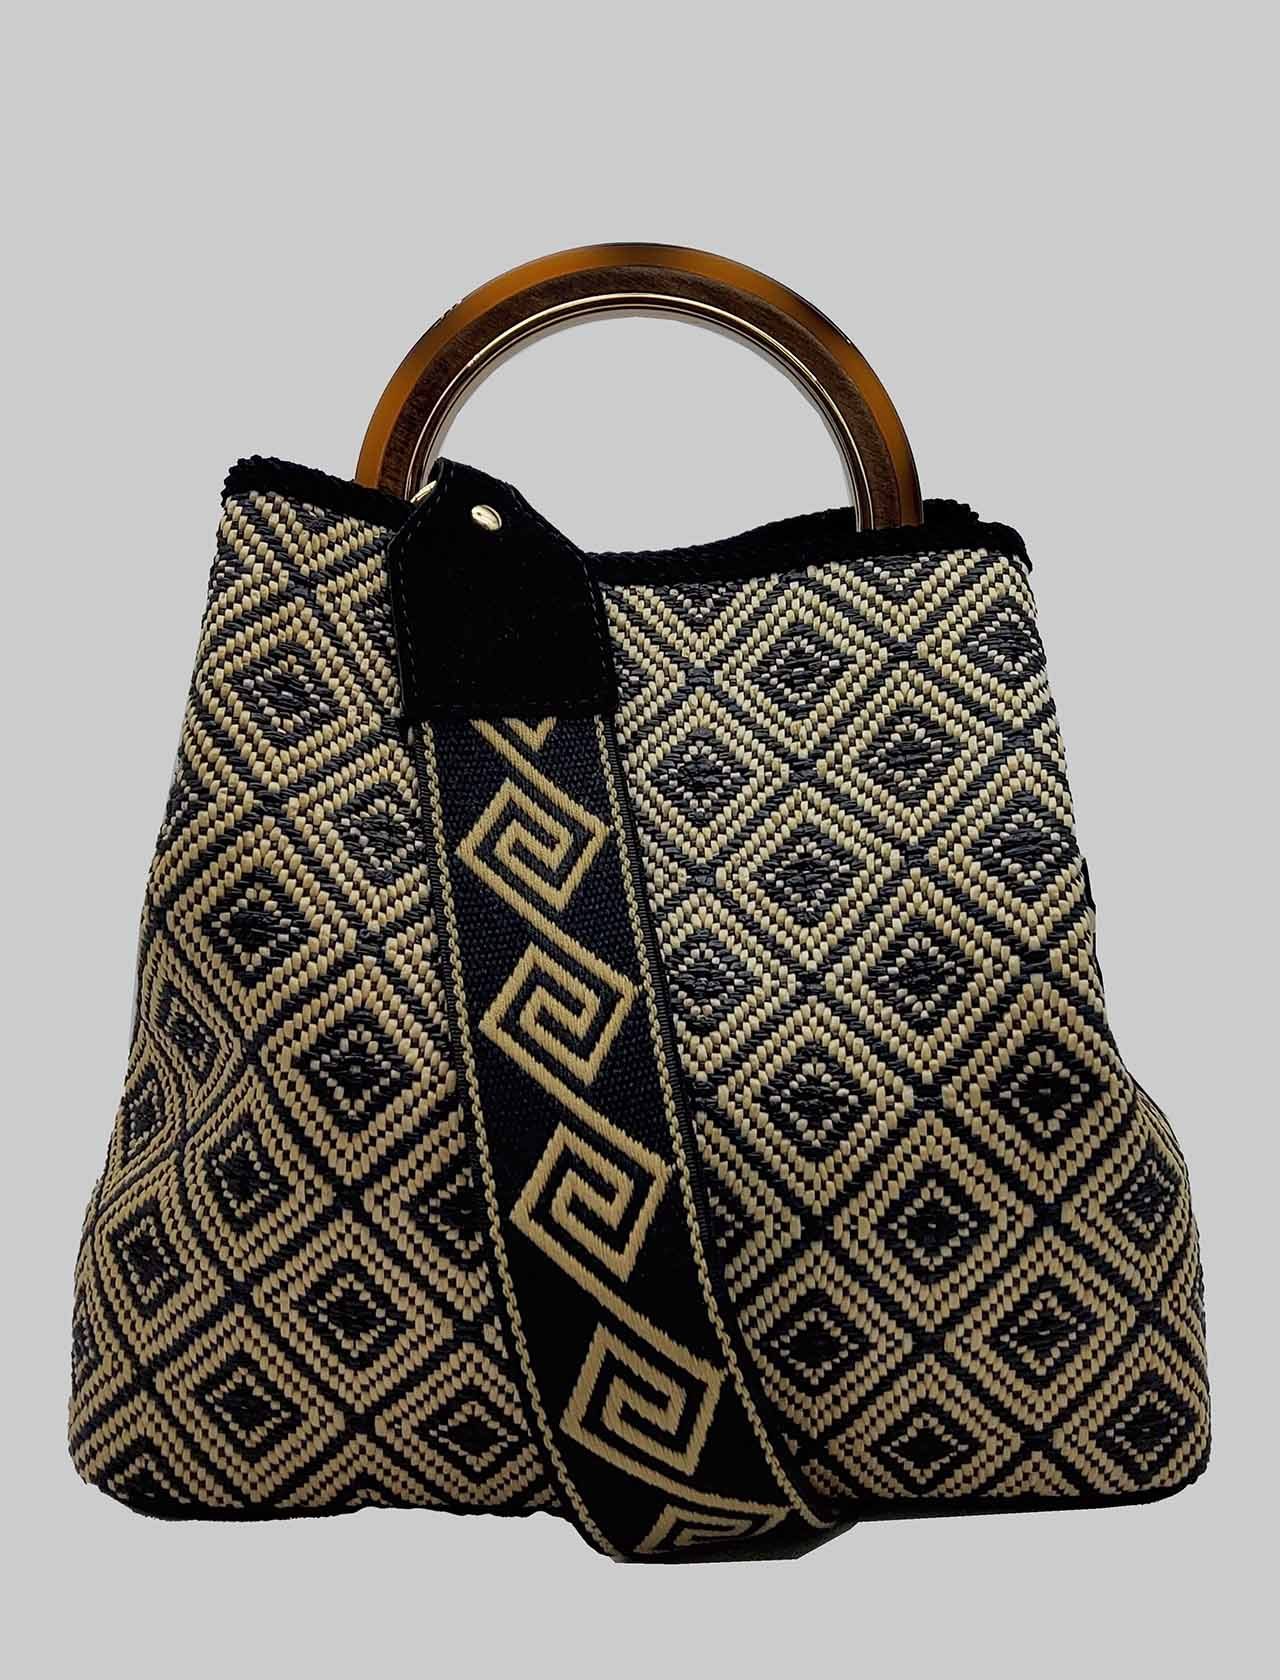 Woman Bucket Bag in Black Jacquard Fabric with Bone Handle and Patterned Shoulder Strap Via Mail Bag | Bags and backpacks | CHECKB01